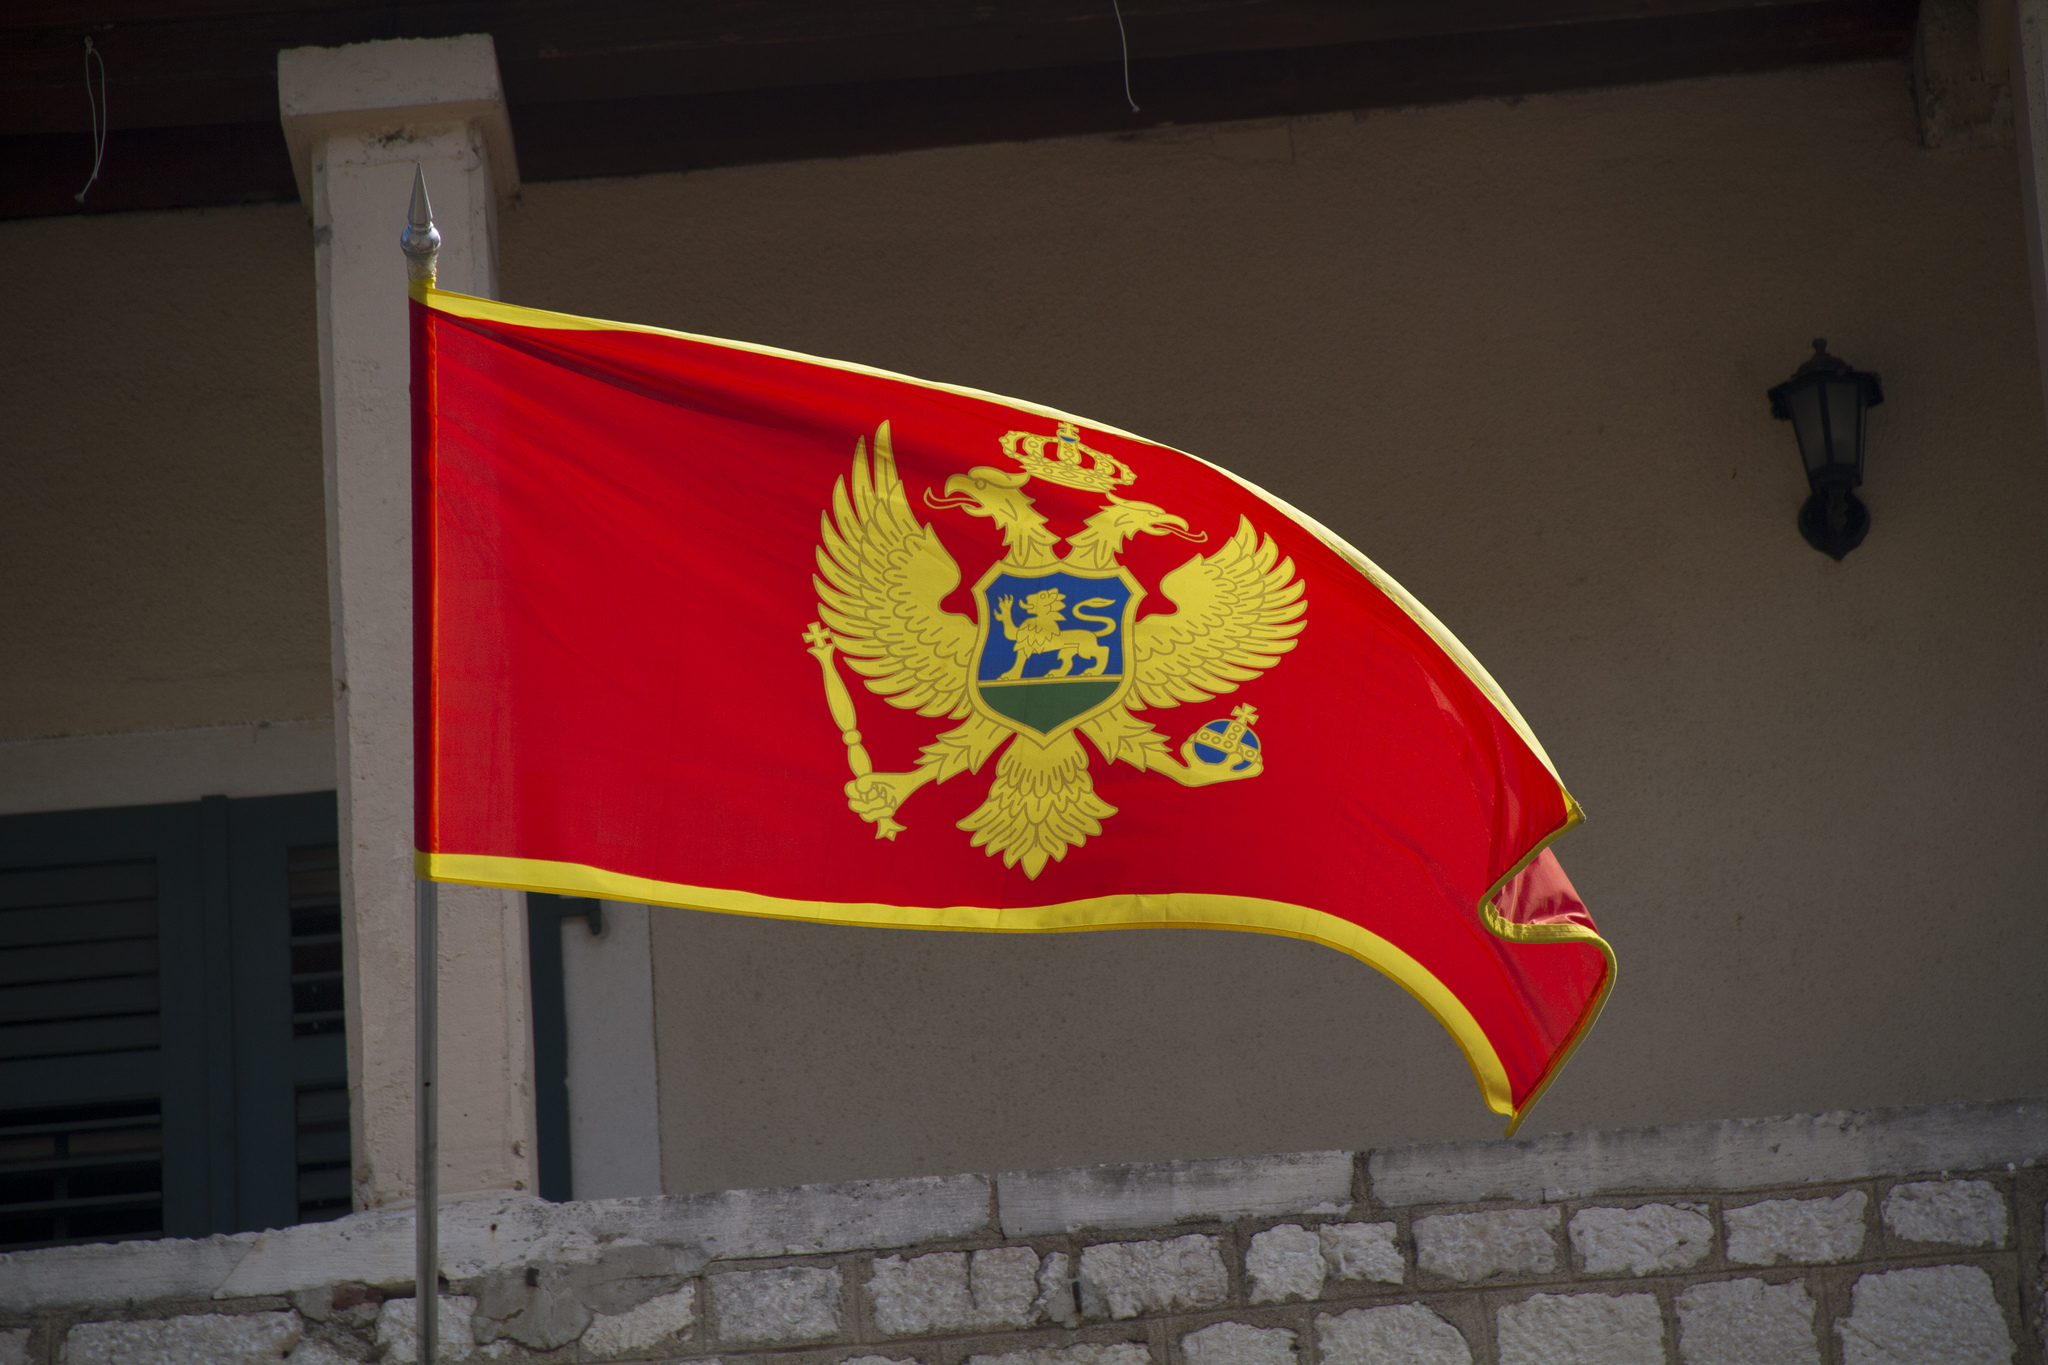 UPDATE 1 - Montenegro turns to 0.2% deflation in 2016